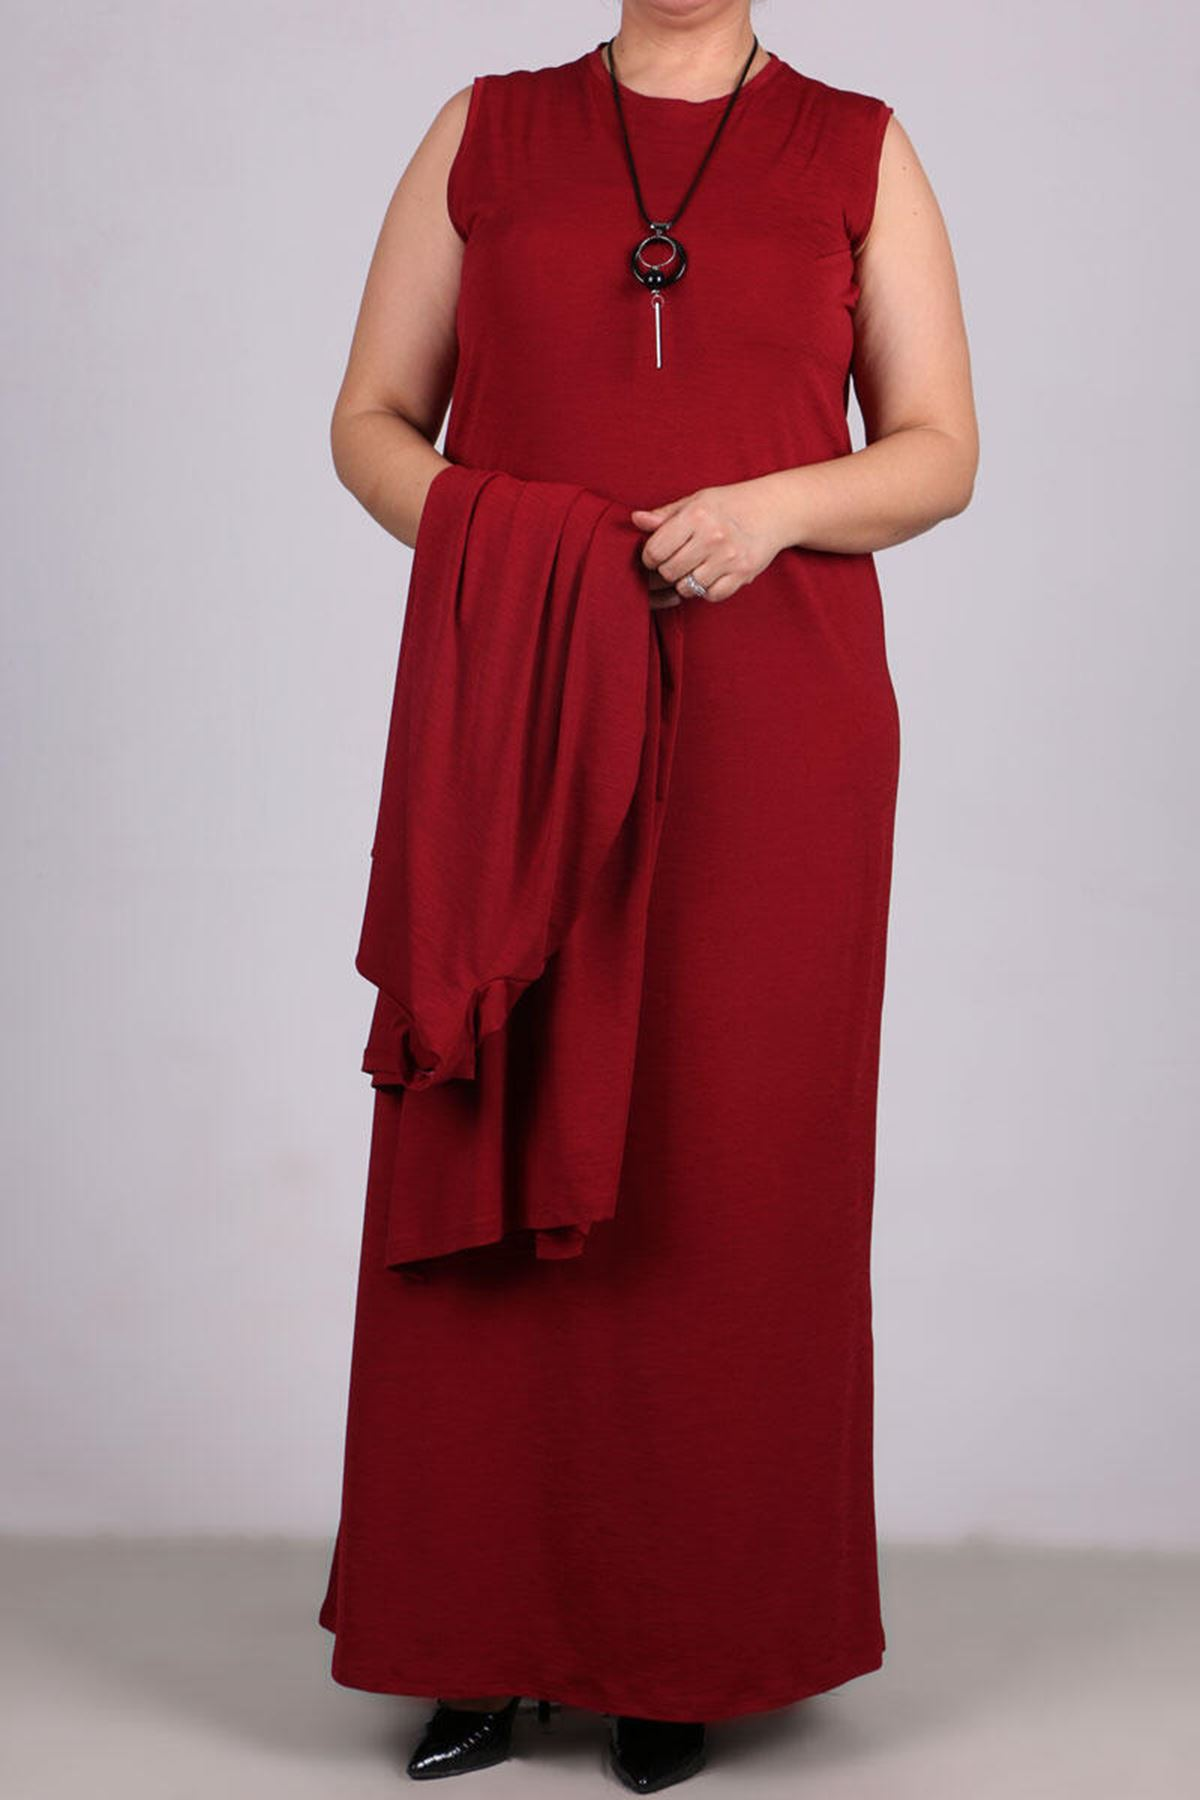 7210 Plus Size Two Piece Set with Dress and  Jacket - Claret Red